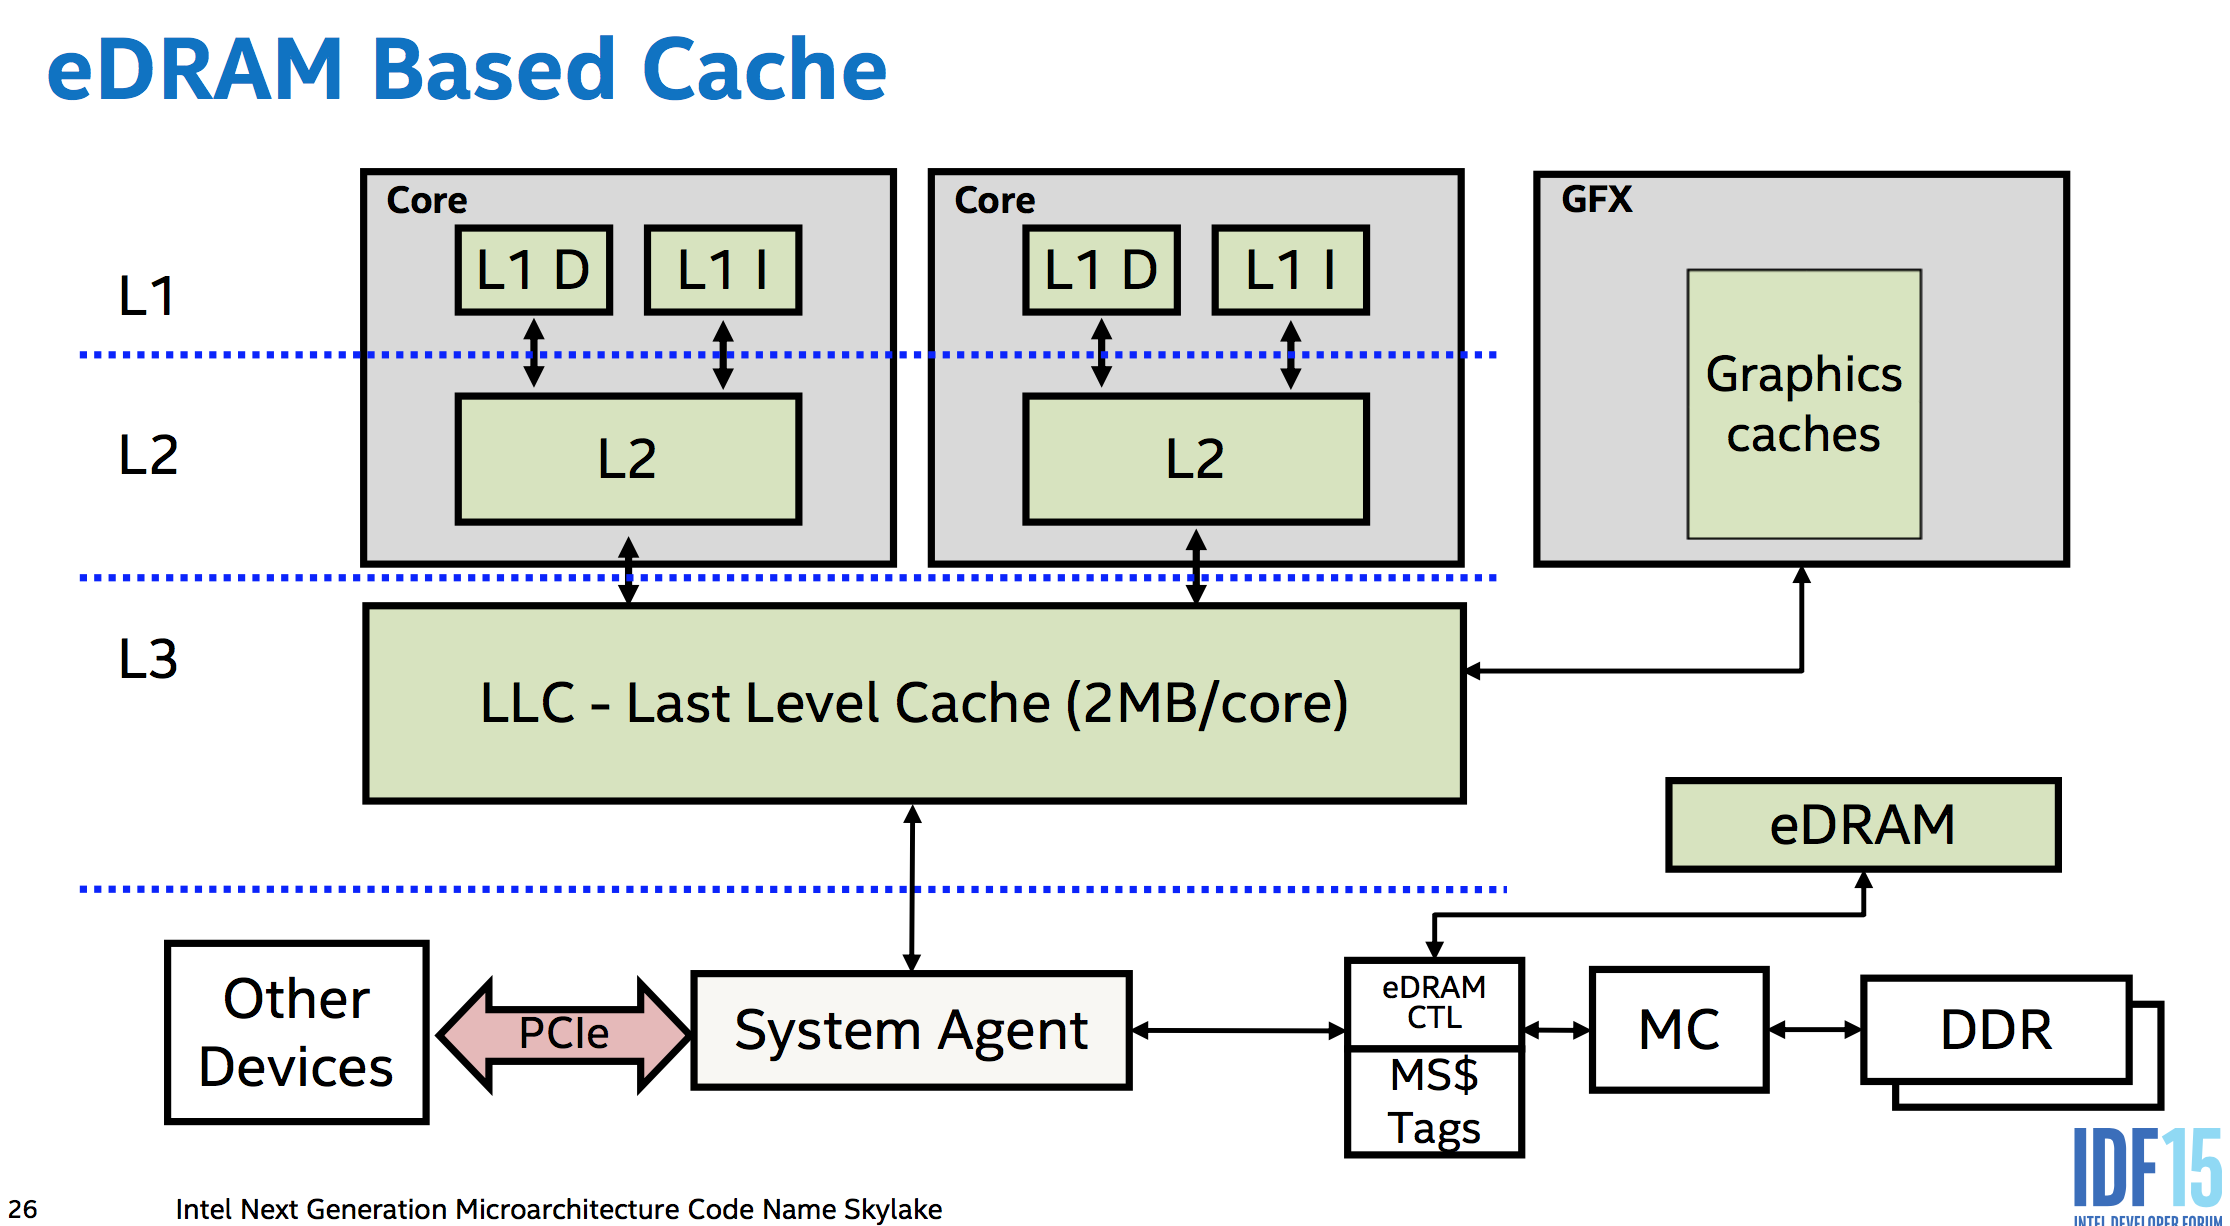 The new eDRAM design lets it cache all memory accesses, even those originating from the PCIe bus using DMA.